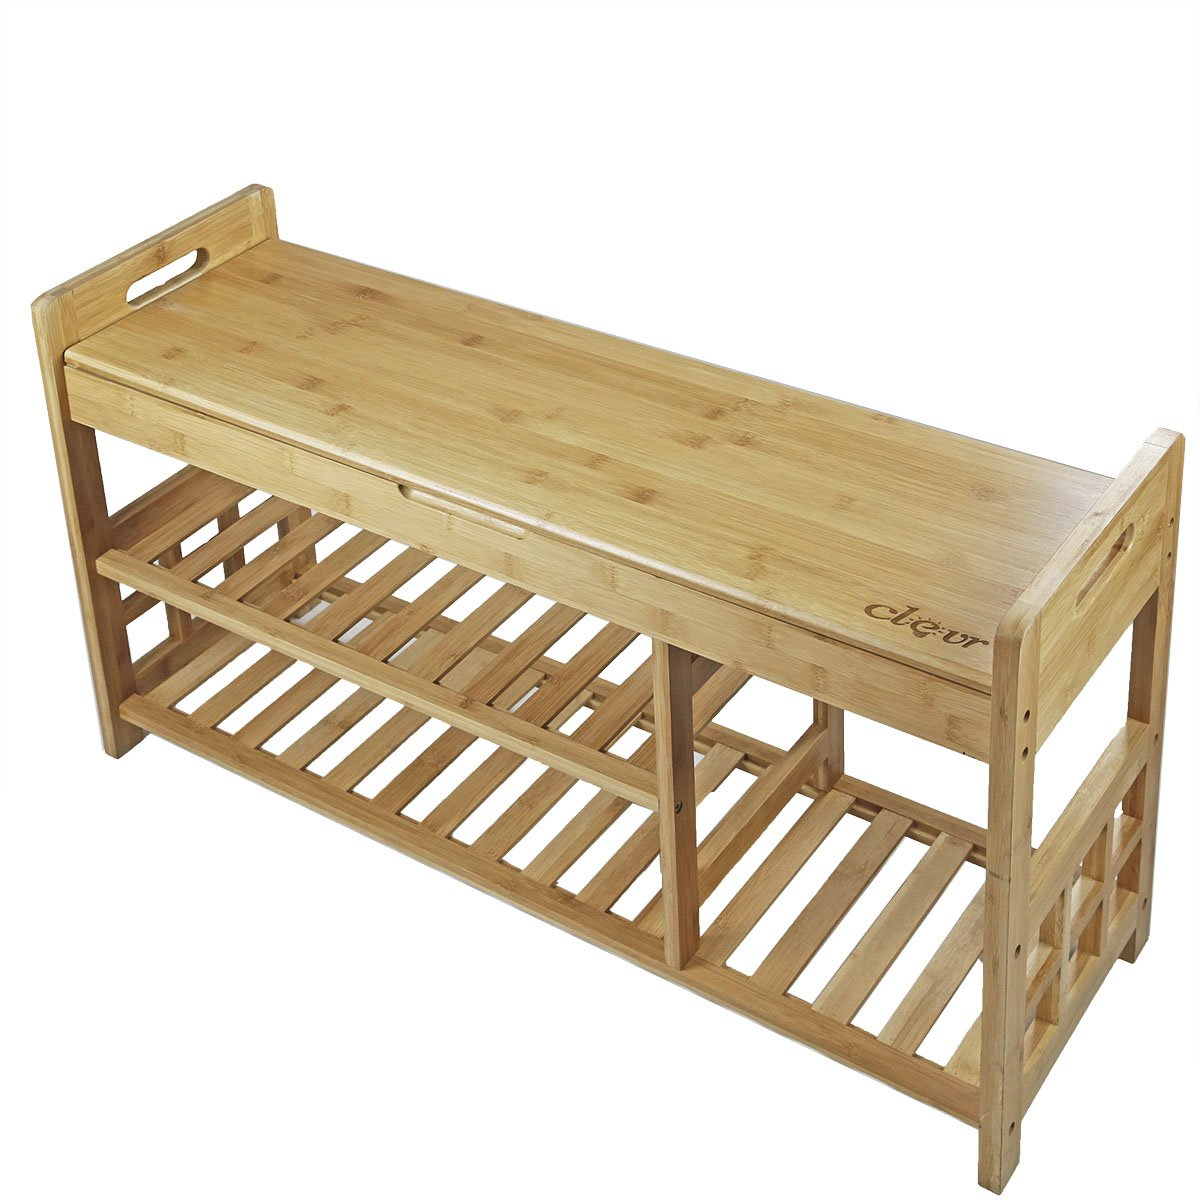 Natural bamboo shoe storage rack bench with tier storage drawer on